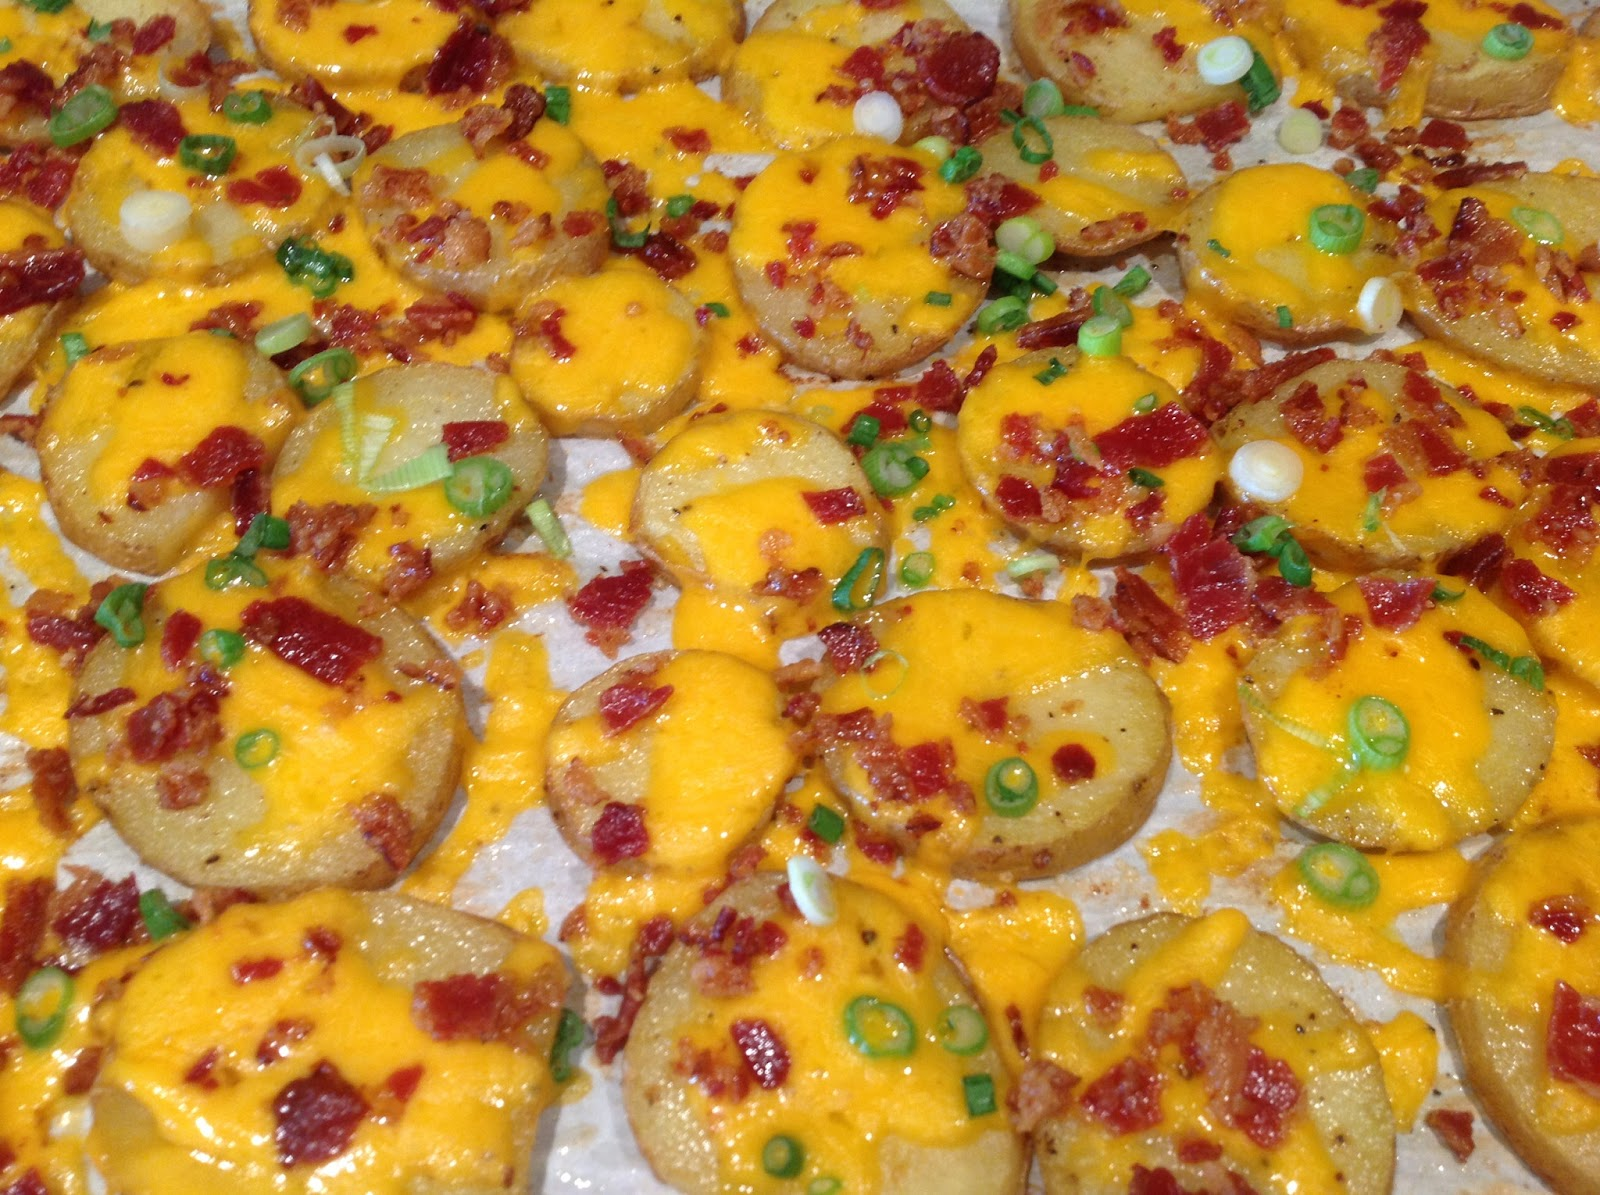 Dawn's Recipes: Loaded Baked Potato Rounds